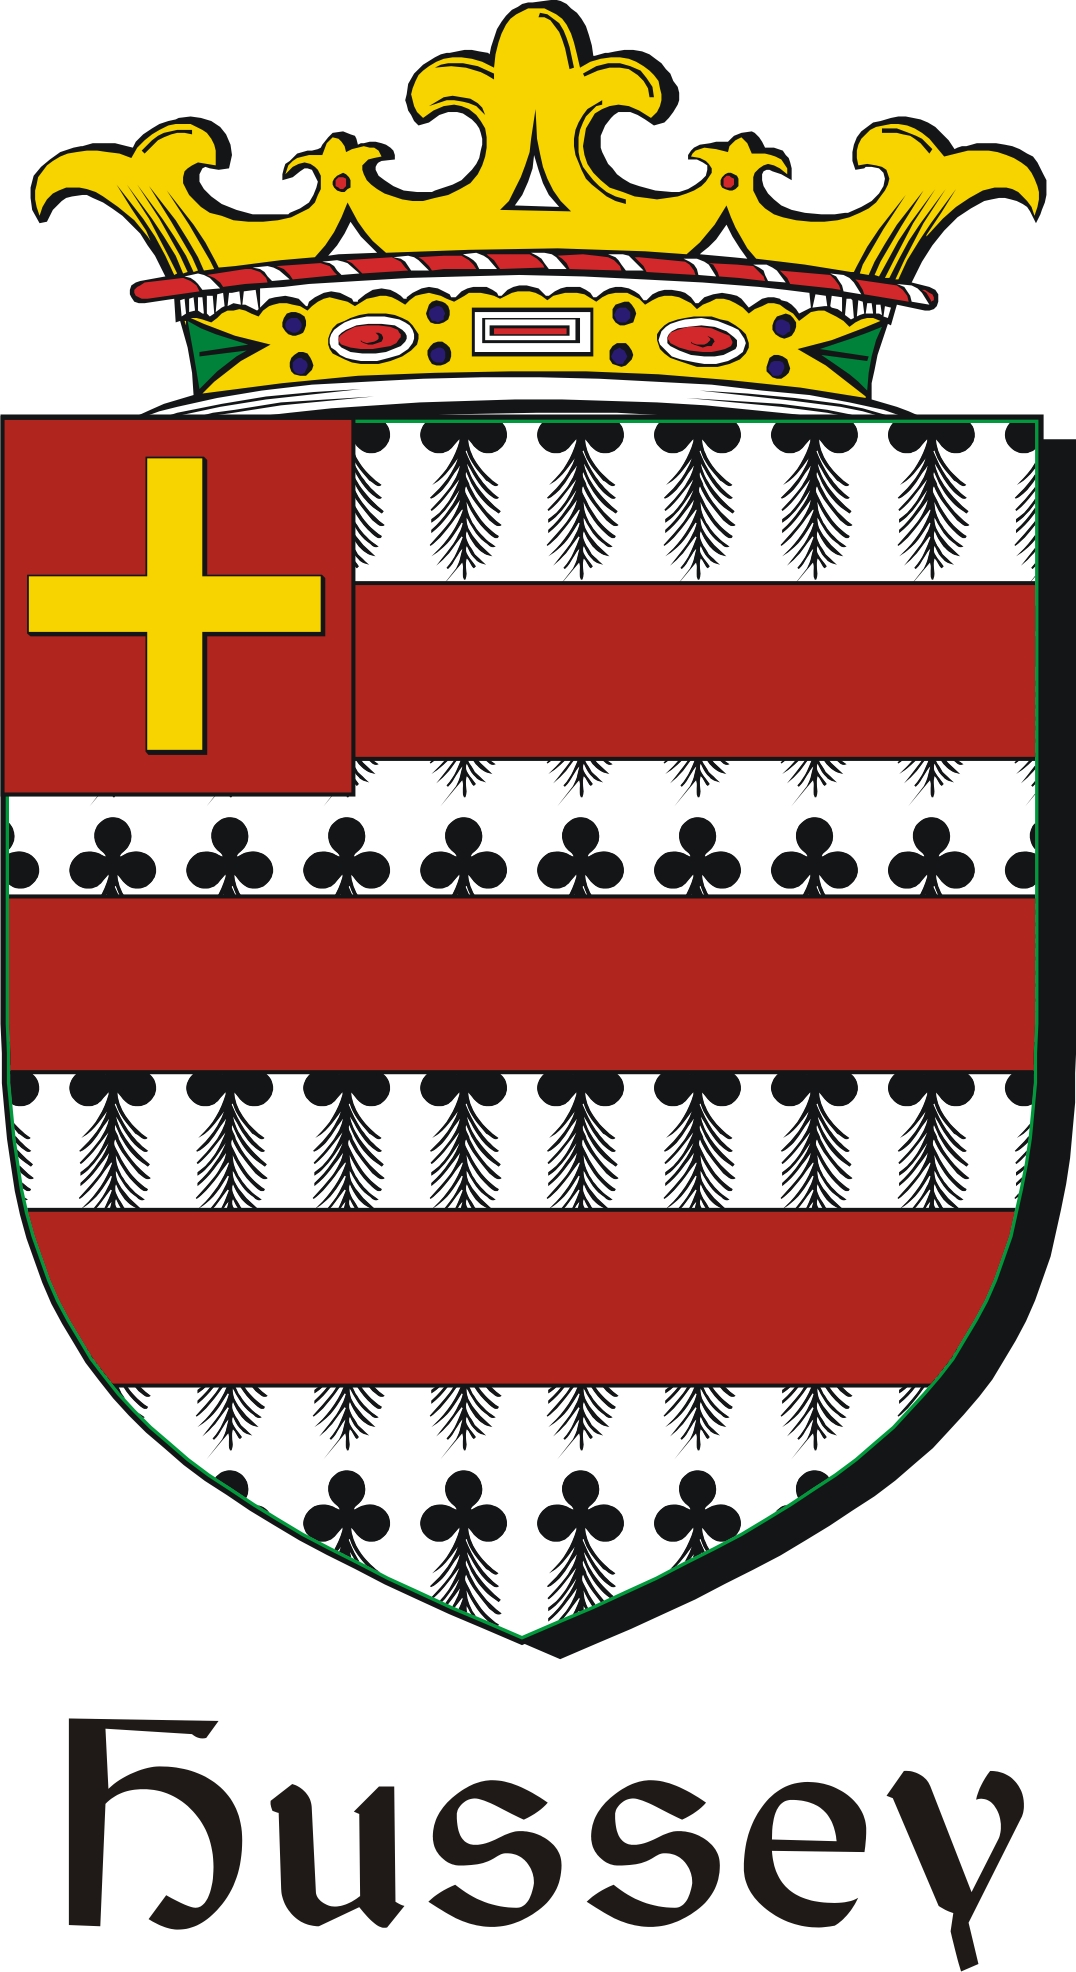 Hussey family crest irish coat of arms image download hussey hussey family crest irish coat of arms image download buycottarizona Images